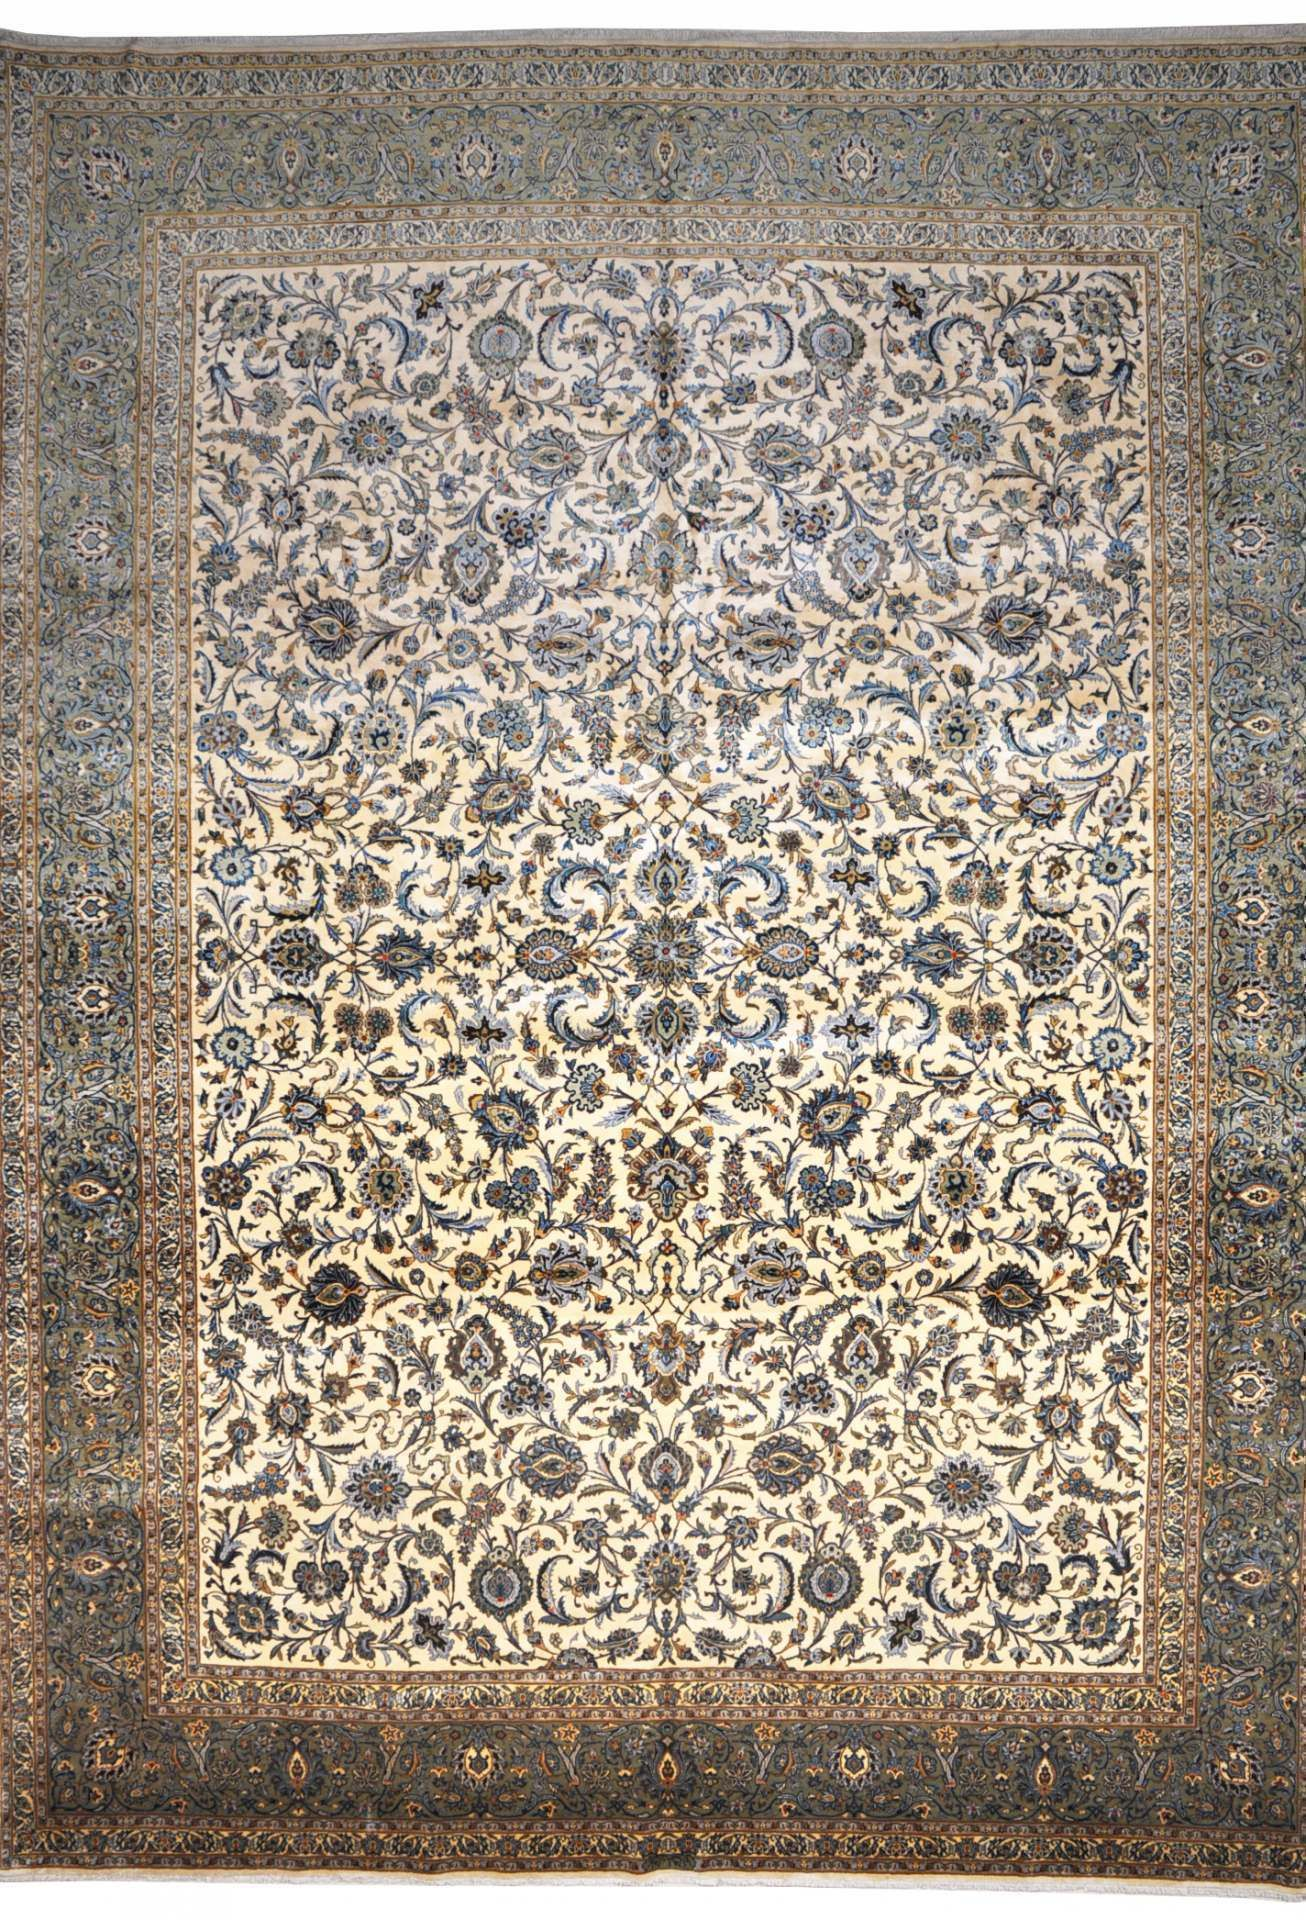 Kashan Teppich 484x360 Rugs On Carpet Kashan Rug Iranian Art